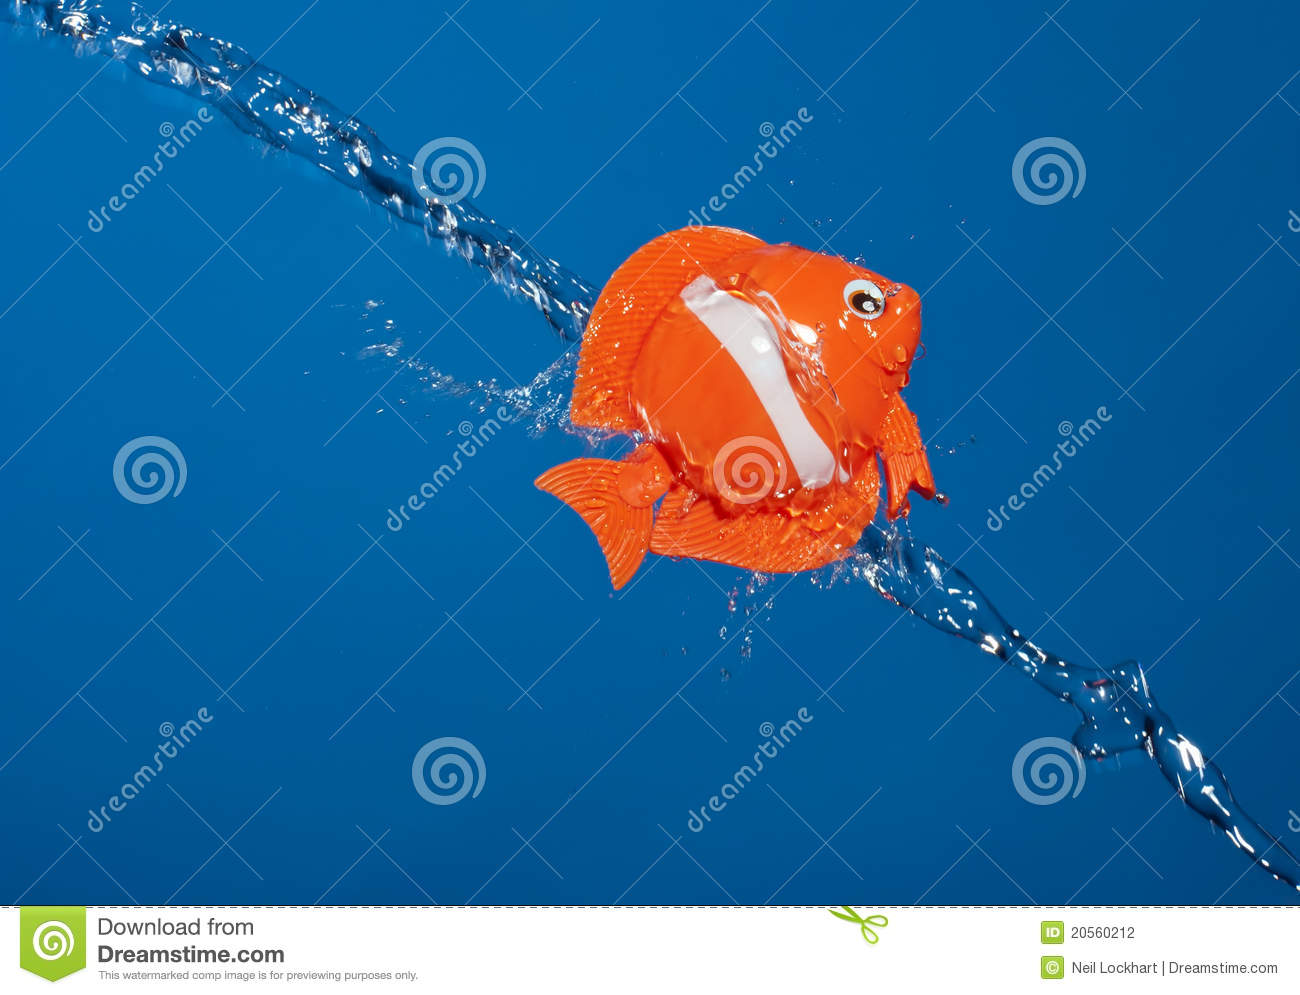 Fish out of water stock photography image 20560212 for Dream about fish out of water